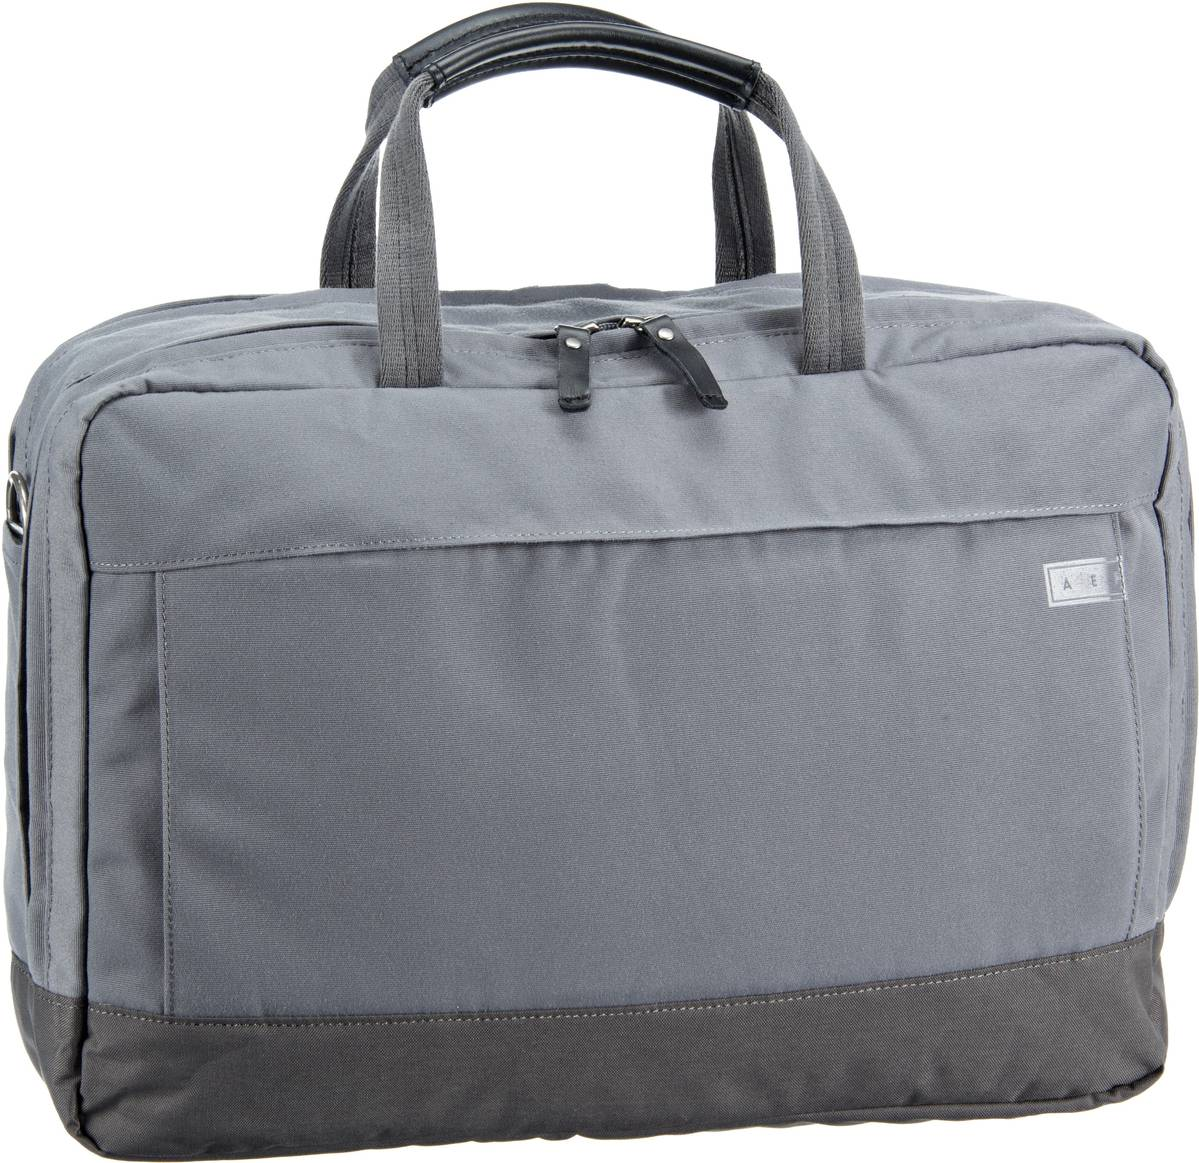 A E P Delta Large Essential Work Bag Graphite Grey - Aktentasche